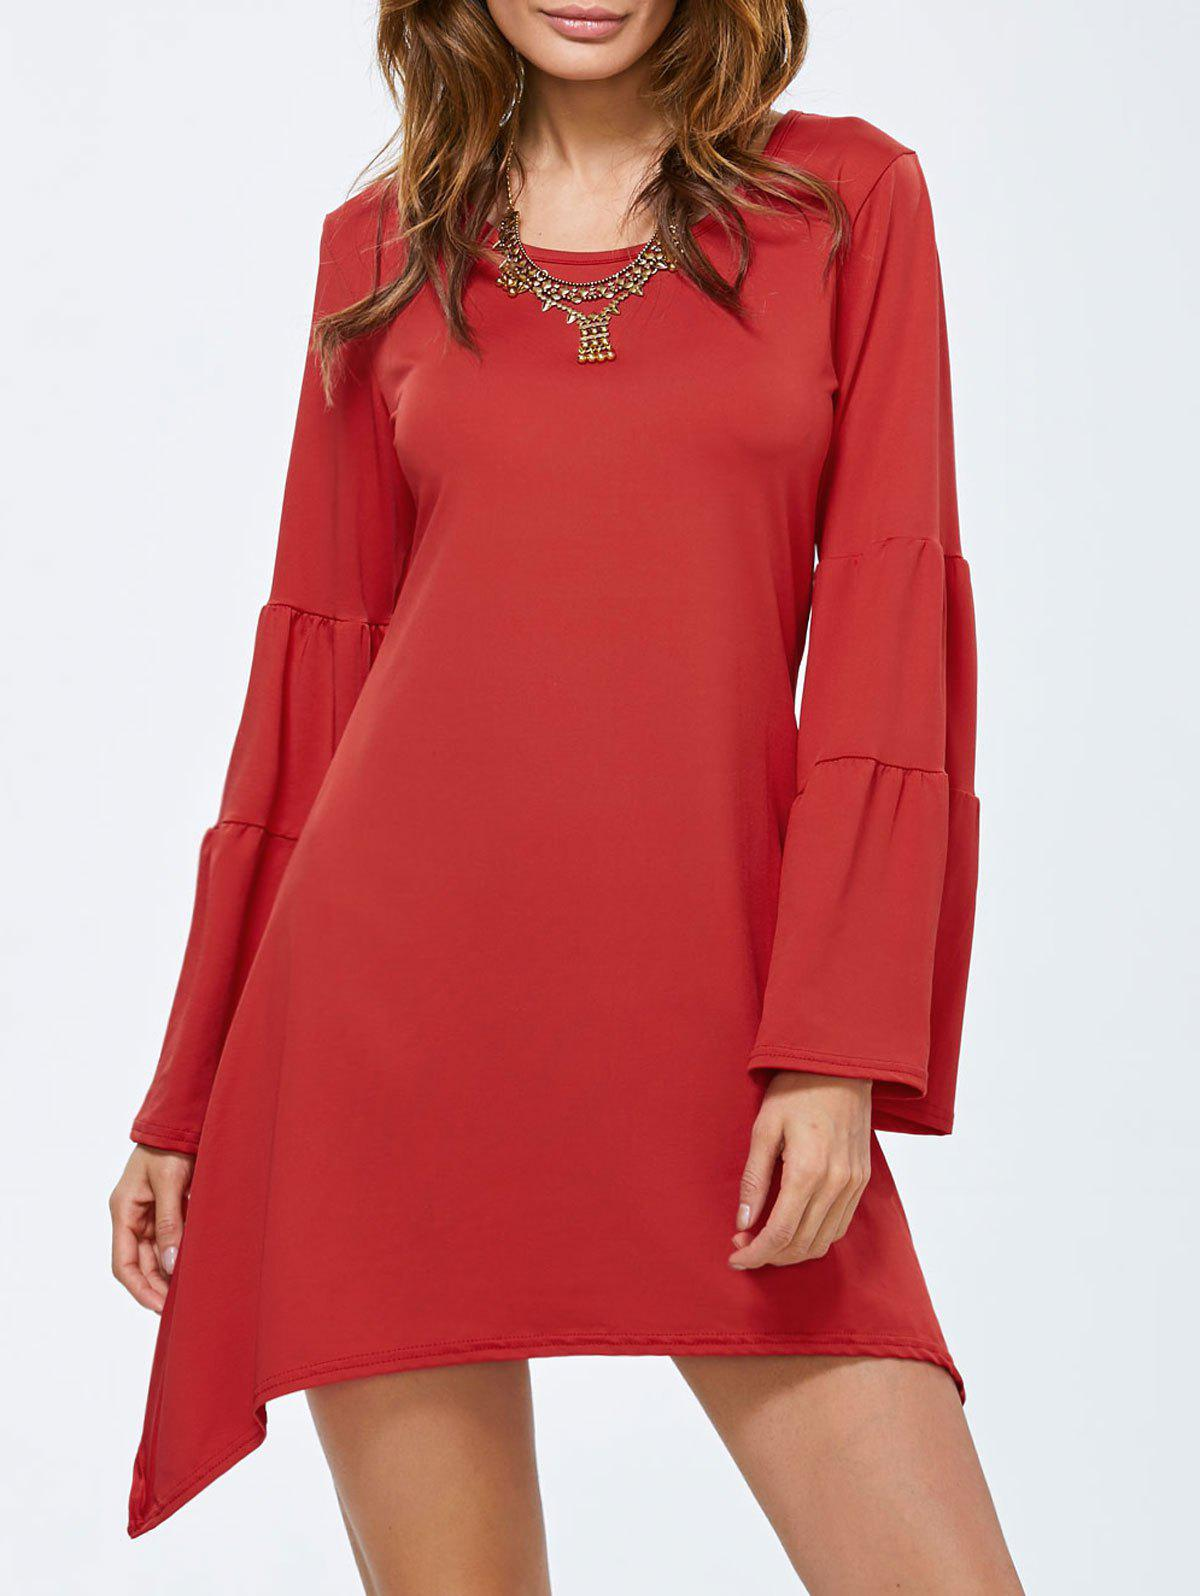 Flare Sleeve Short Dress - RED XL